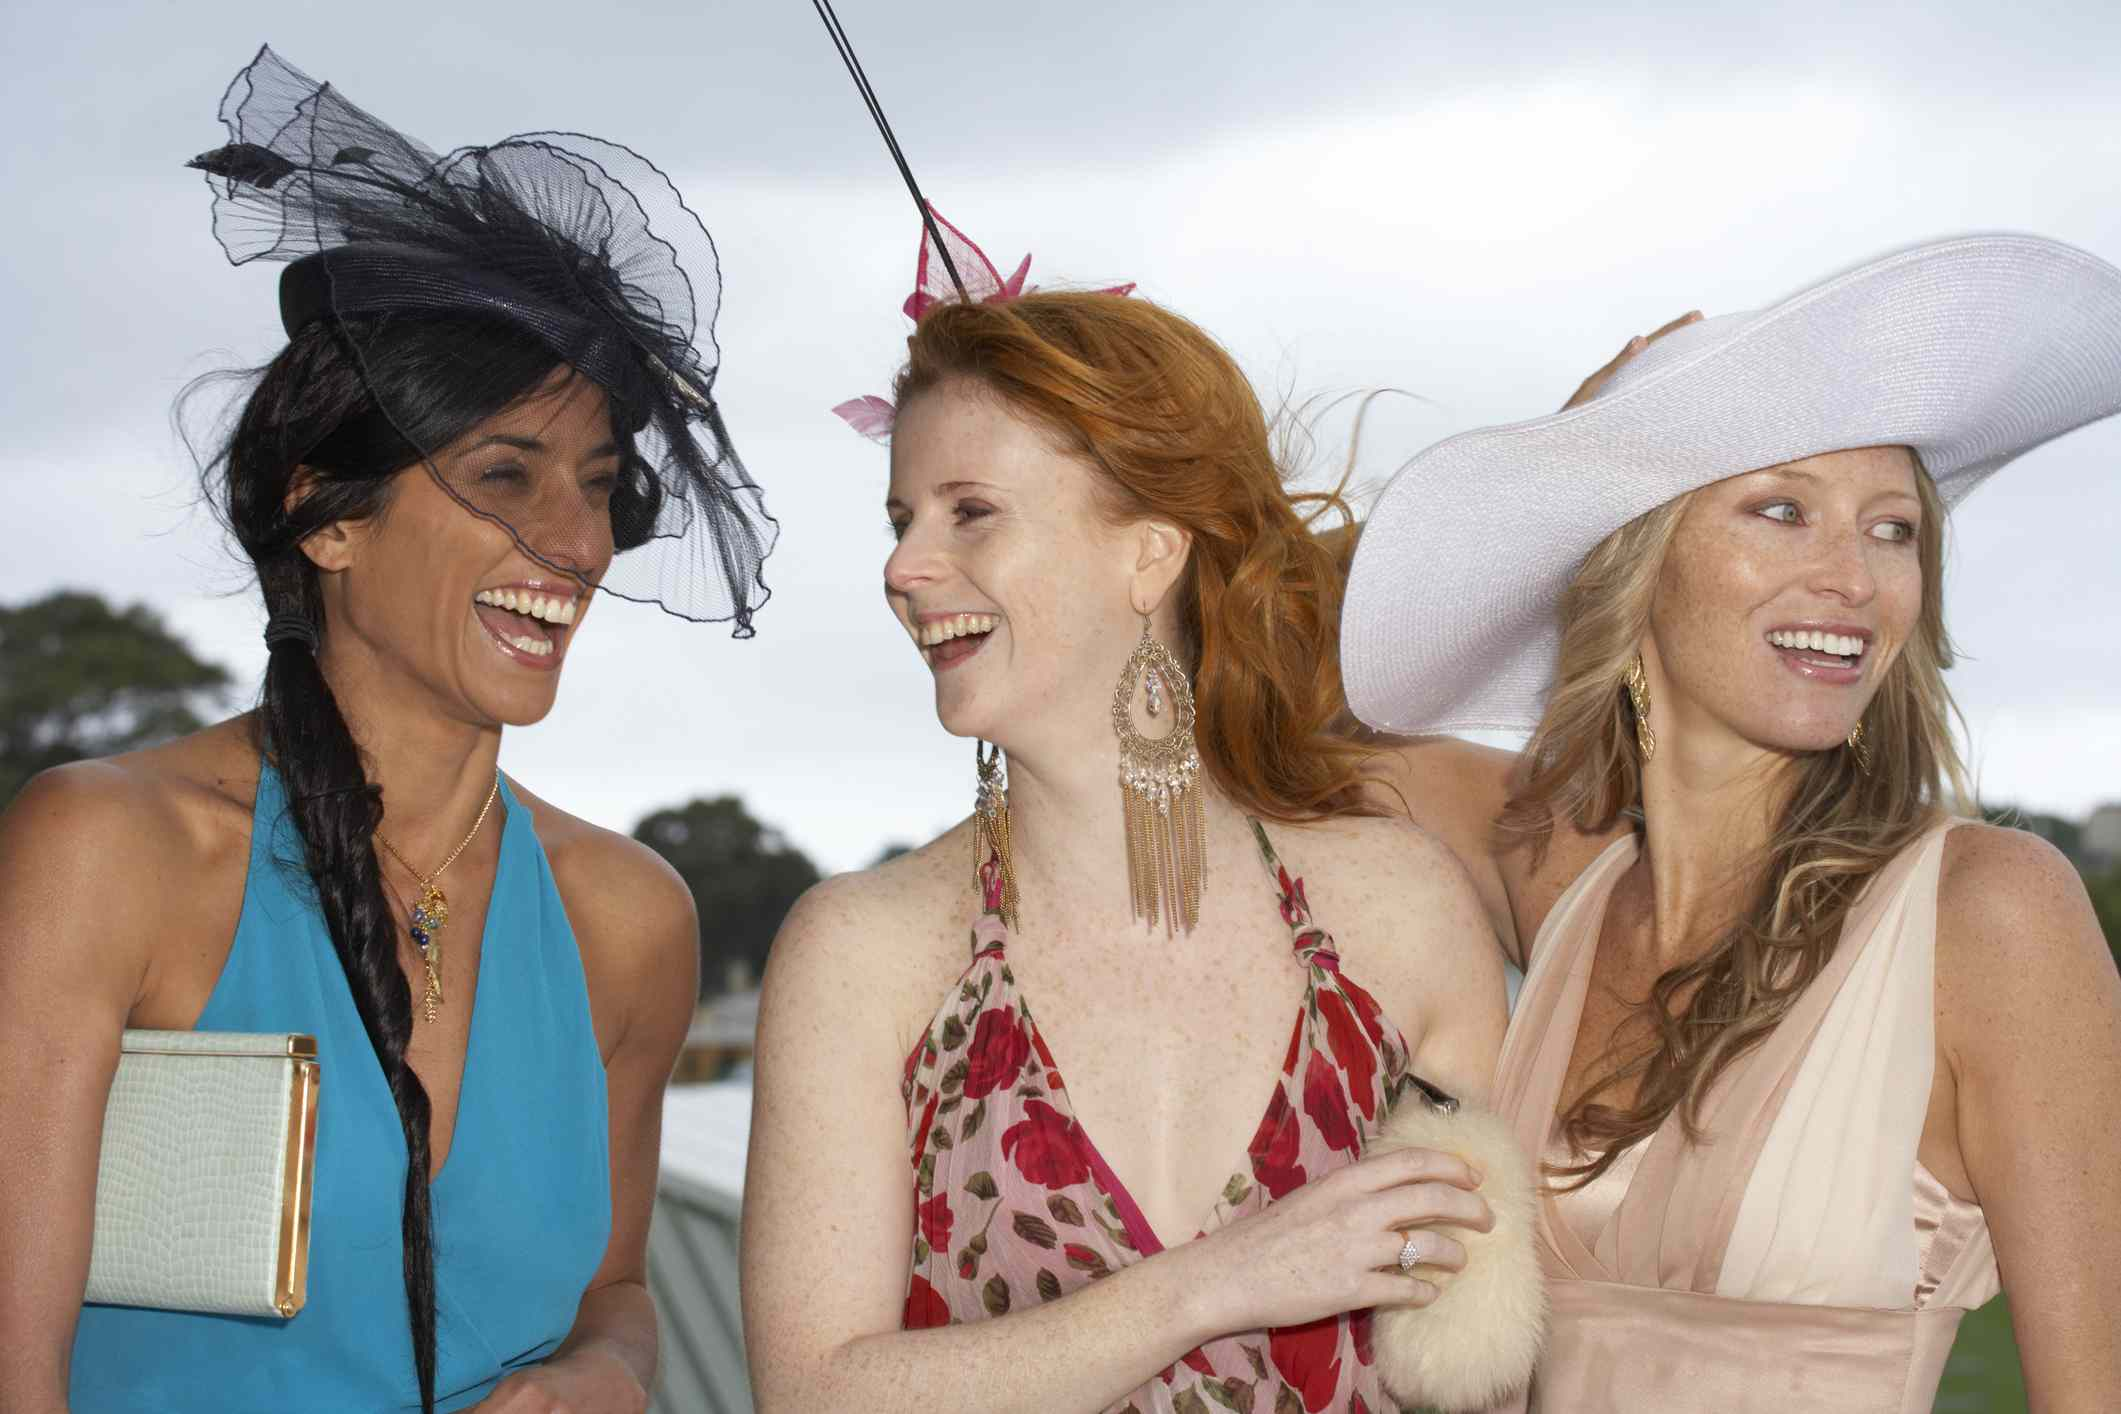 Find fascinators and other hats at the Village Hat Shop in San Diego